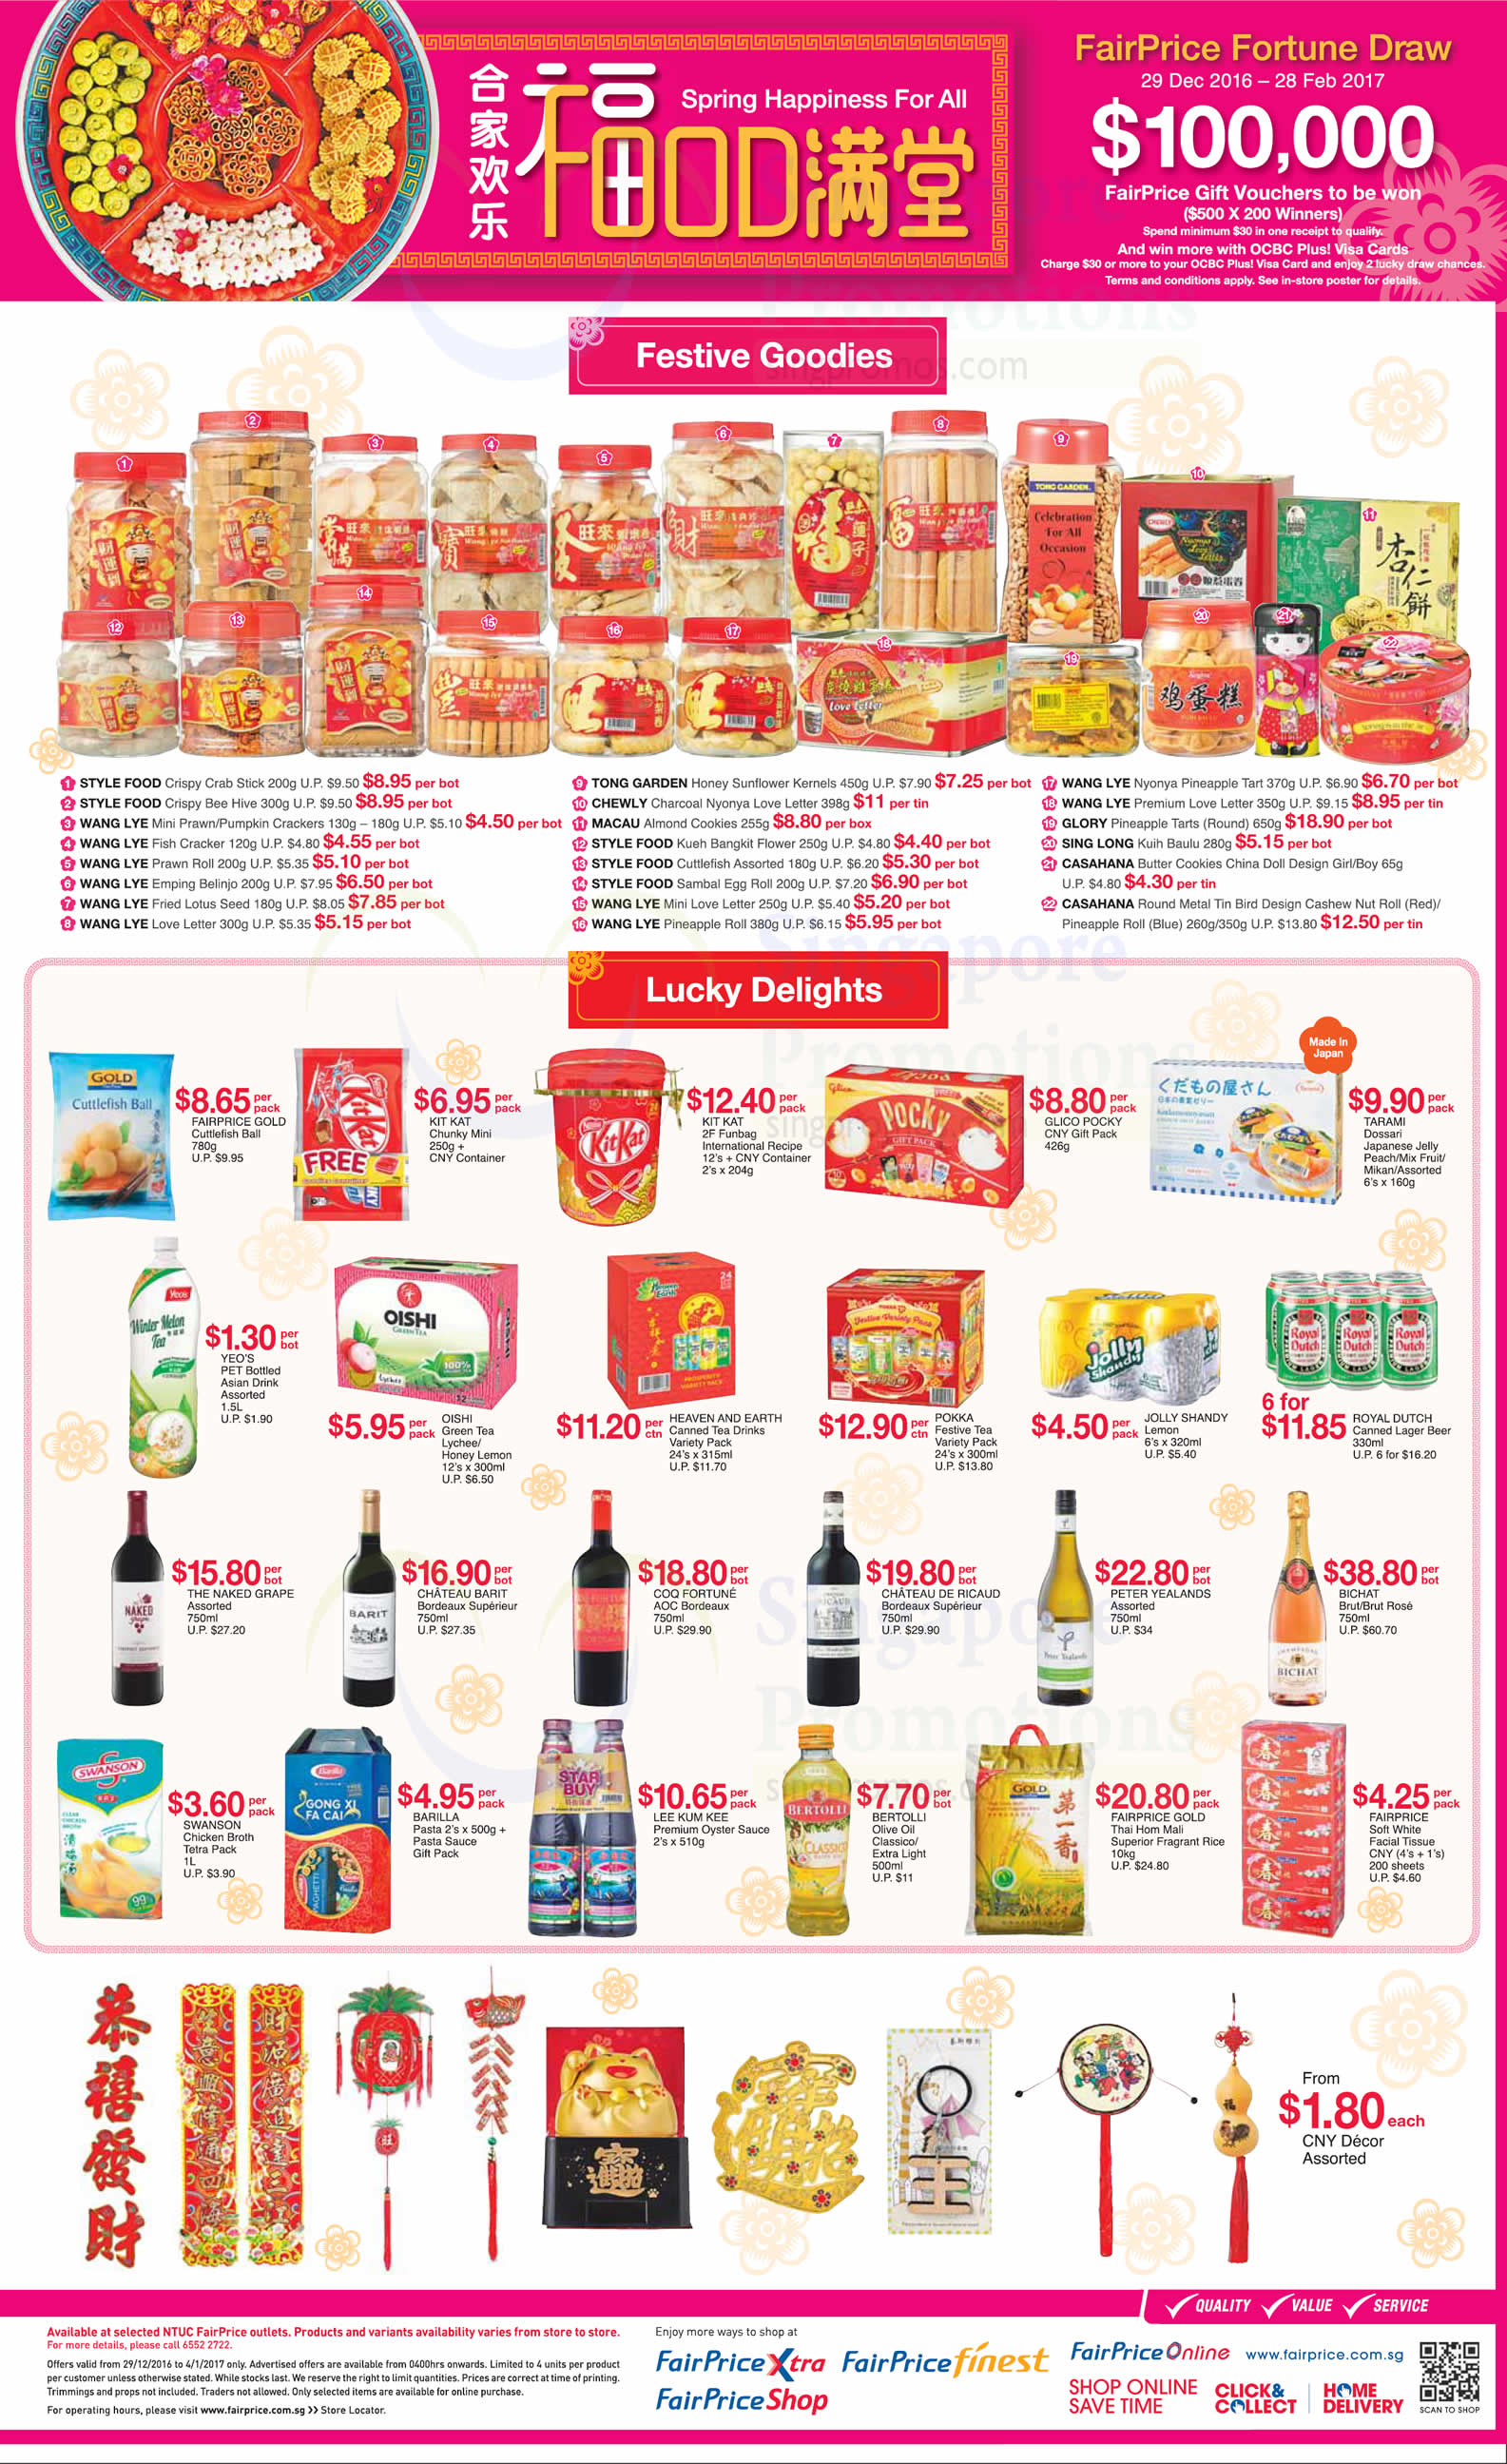 Fairprice latest offers features many abalone offers ...